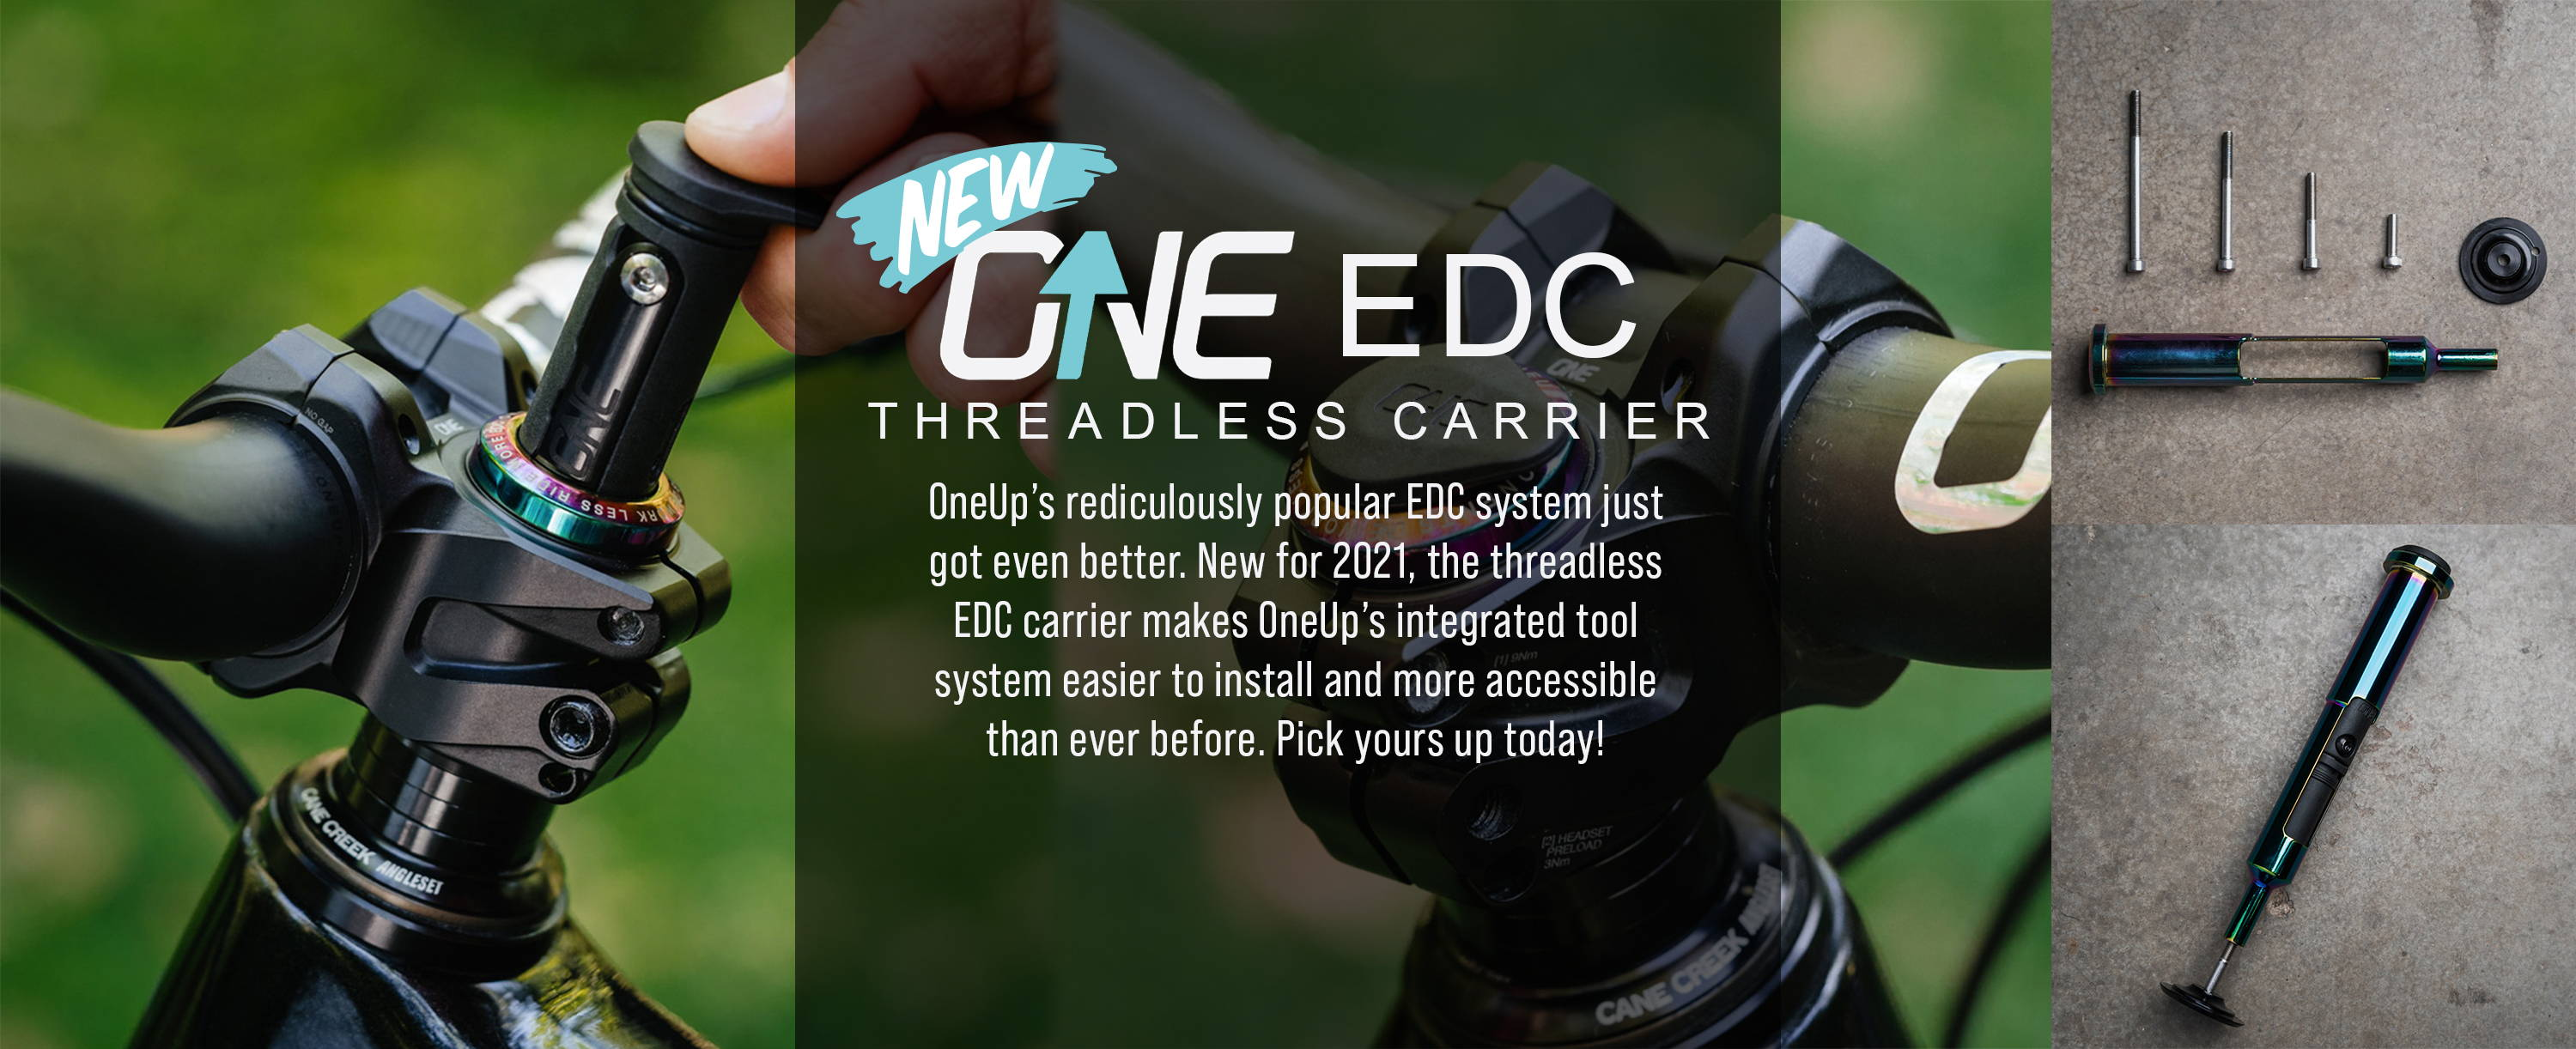 OneUp components EDC Threadless carrier banner